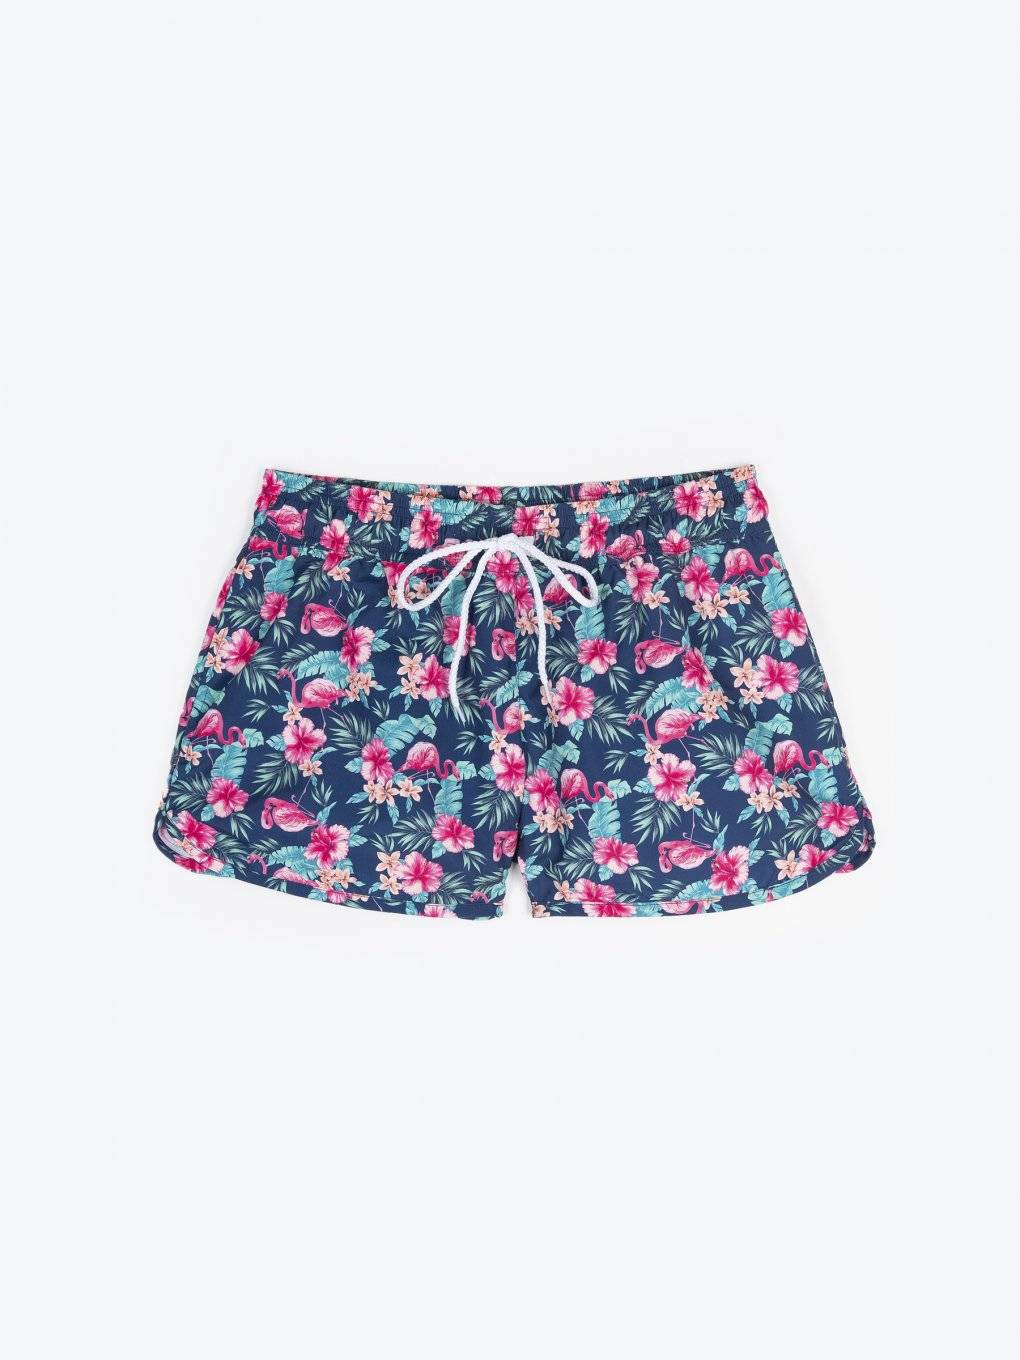 Printed shorts with pockets